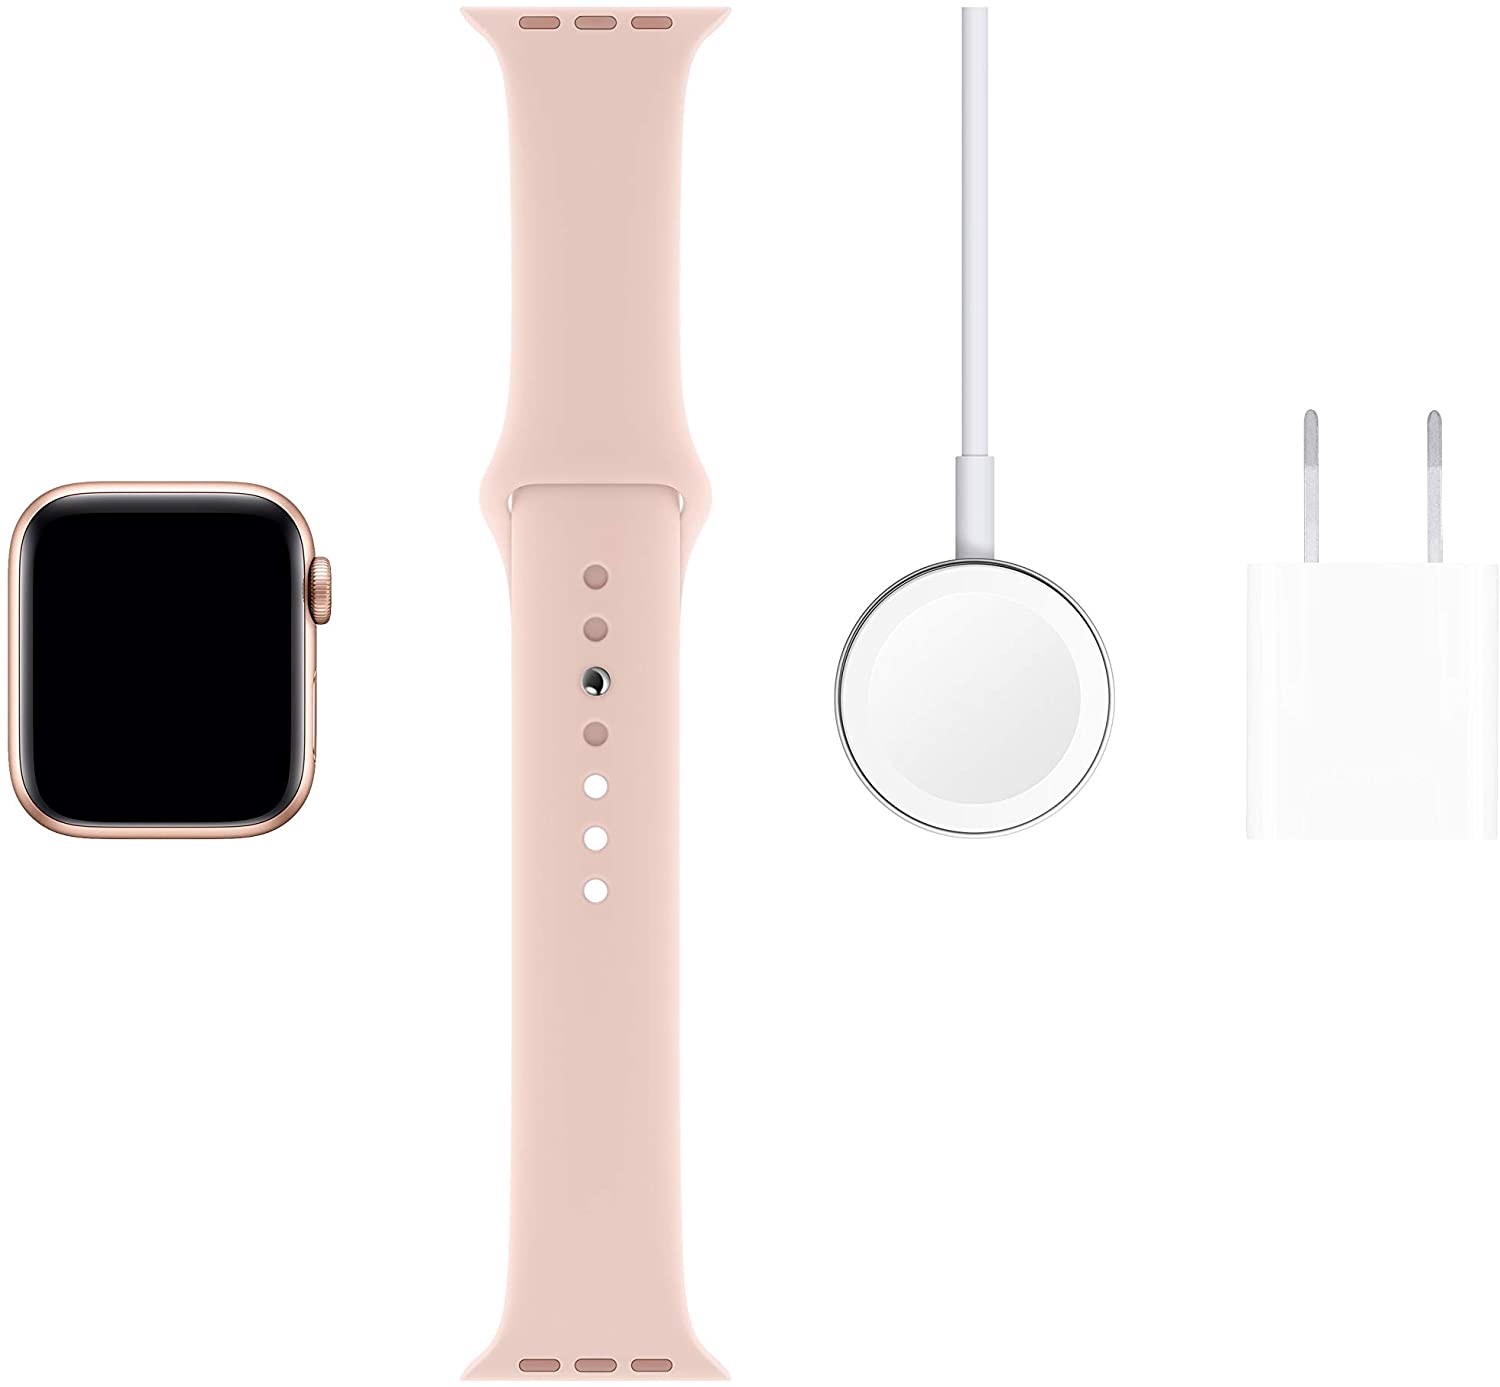 Apple Watch Series 5 (GPS, 40mm) - Mới 100% nguyên seal